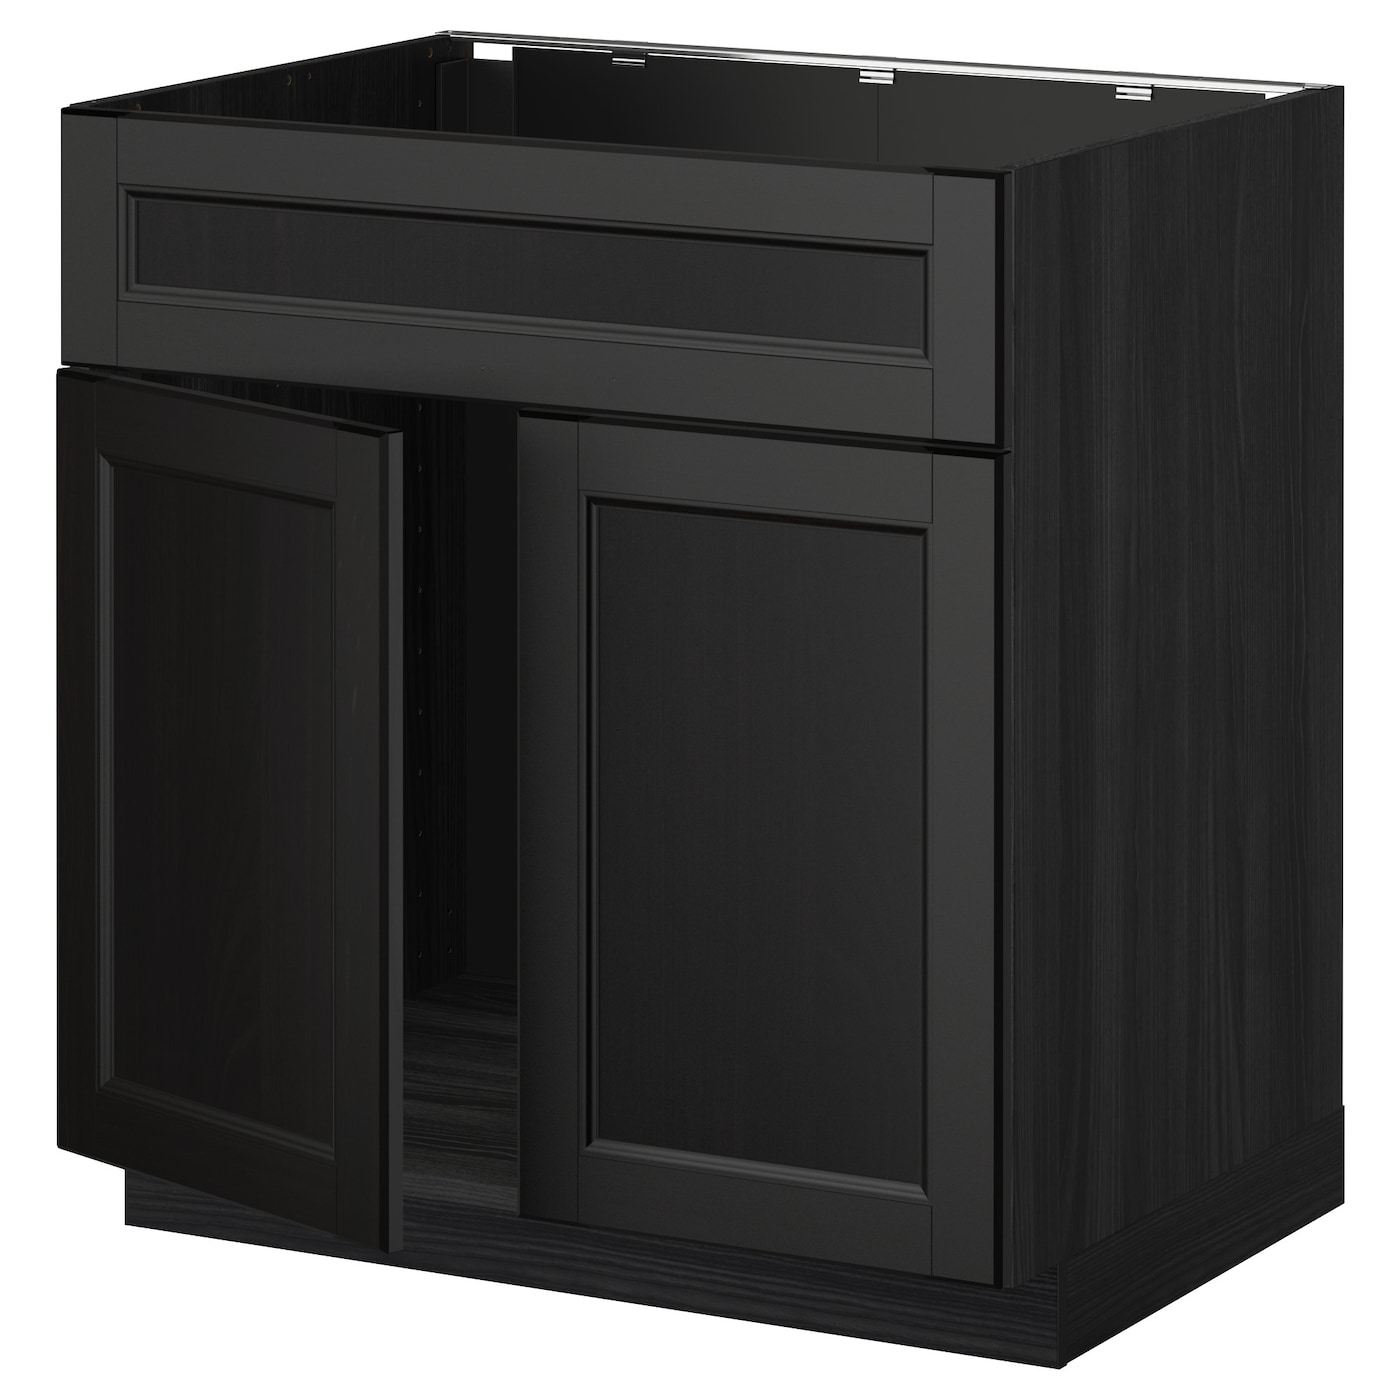 black kitchen base cabinets metod base cabinet f sink w 2 doors front black laxarby 12375